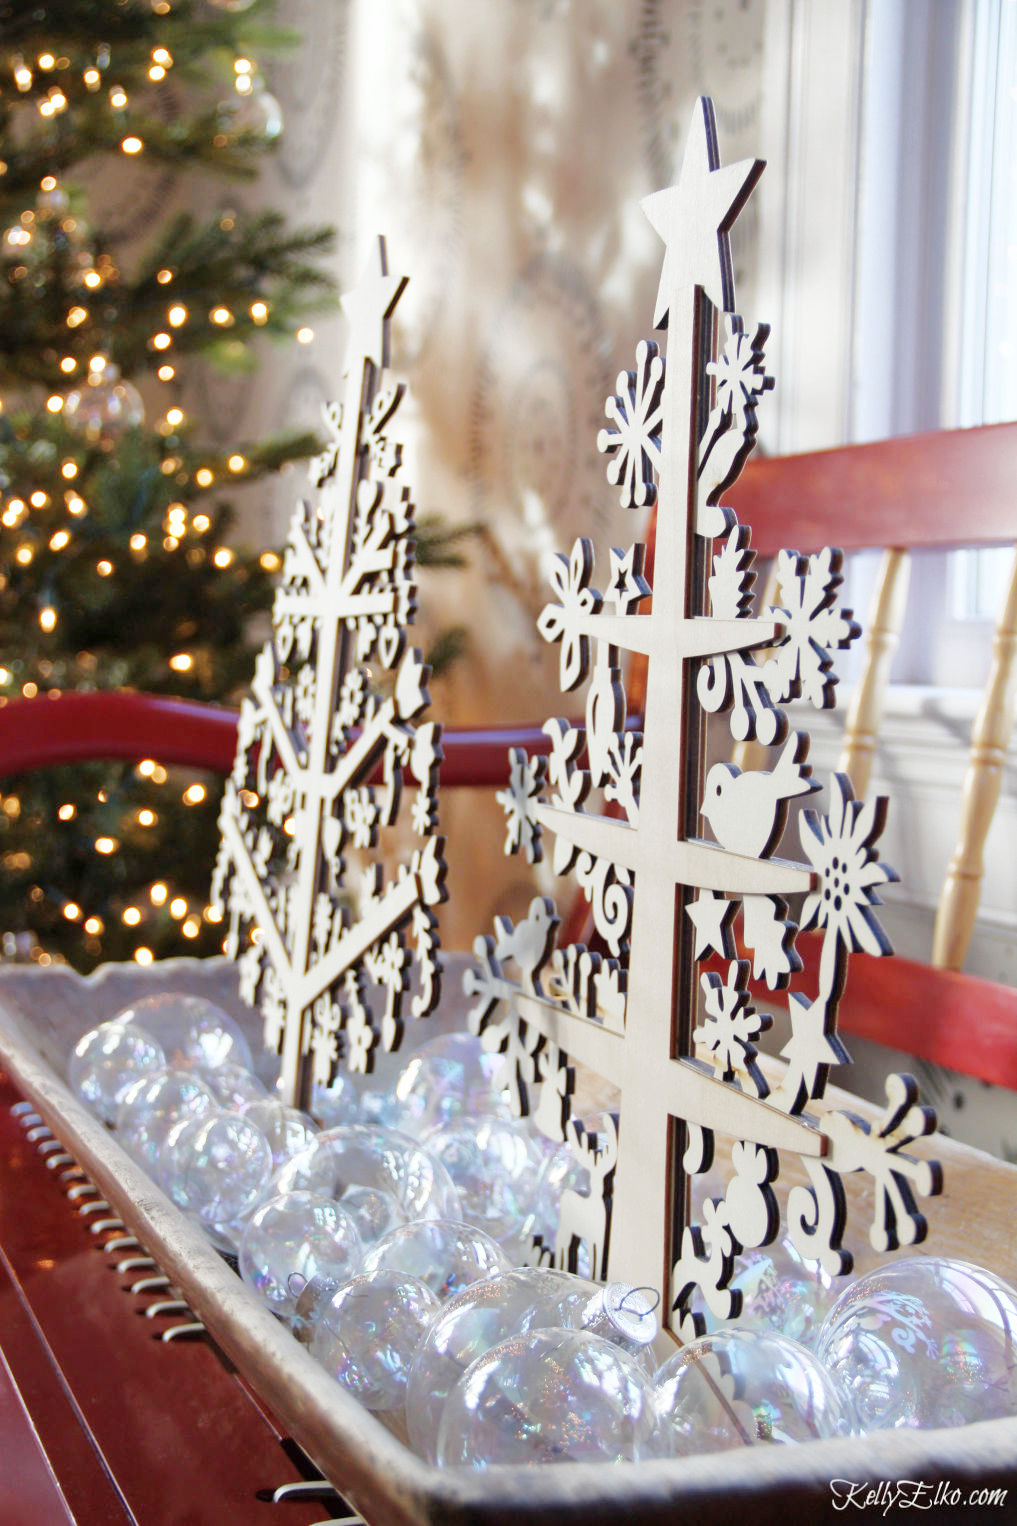 Creative Christmas Home Tour - love this dough bowl filled with clear ornaments and wood cut trees kellyelko.com #christmas #christmasdecor #christmasdecorating #christmashome #christmastour #diychristmas #christmasideas #christmasmantel #christmastree #christmasornaments #vintagechristmas #farmhousechristmas #colorfulchristmas #creativechristmas #kellyelko #doughbowl